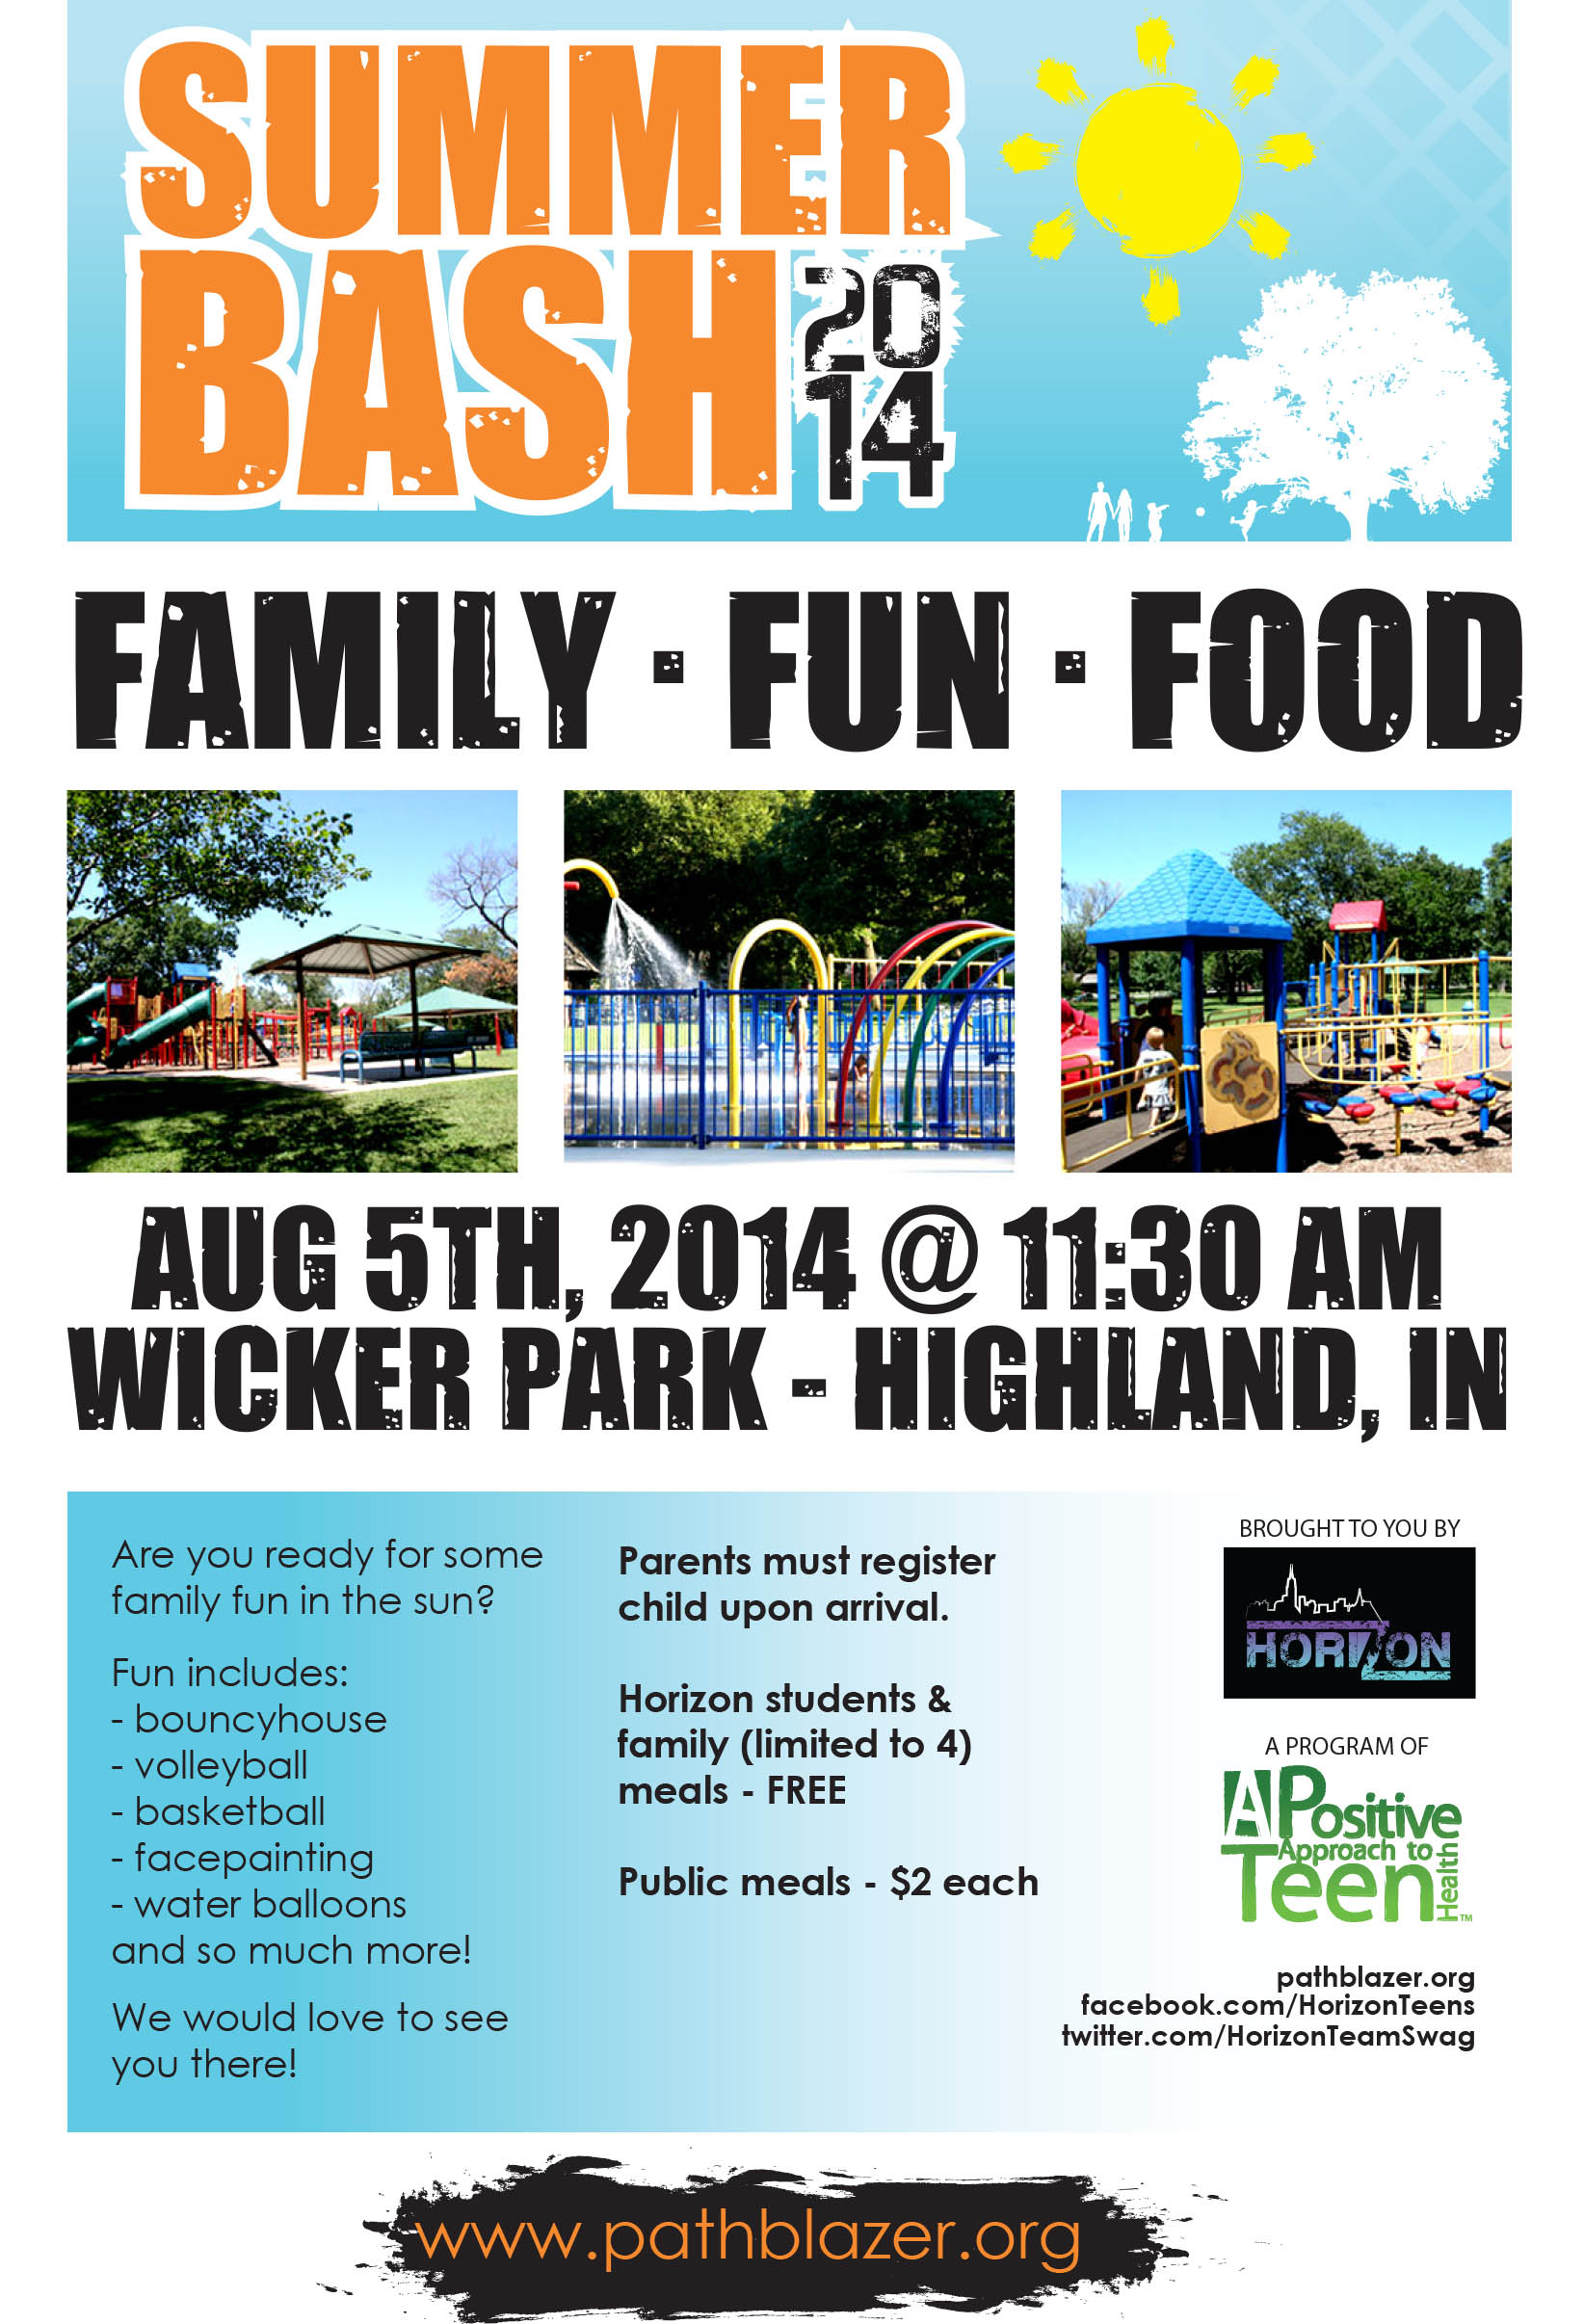 Summer Bash 2014 – A Family Friendly Free Event